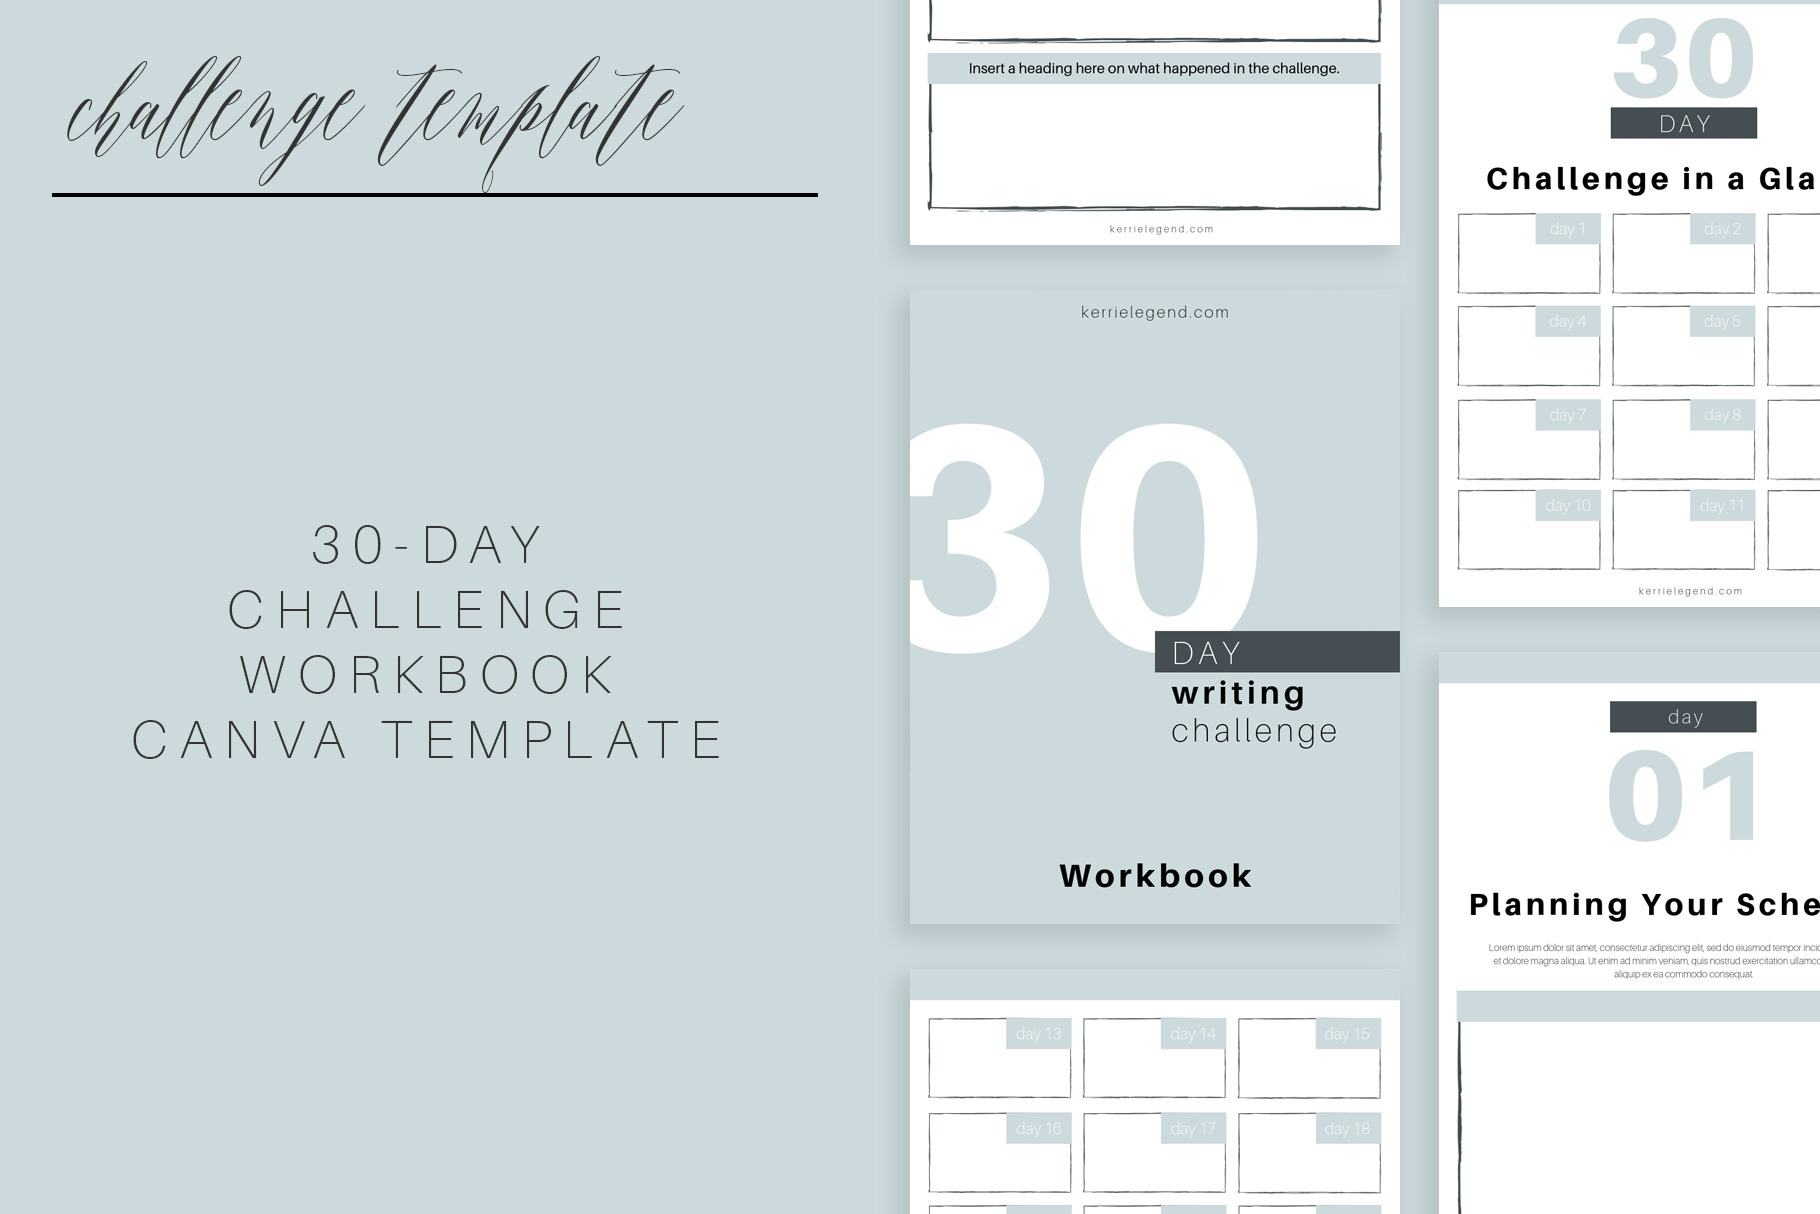 30-Day Challenge Workbook Canva Template